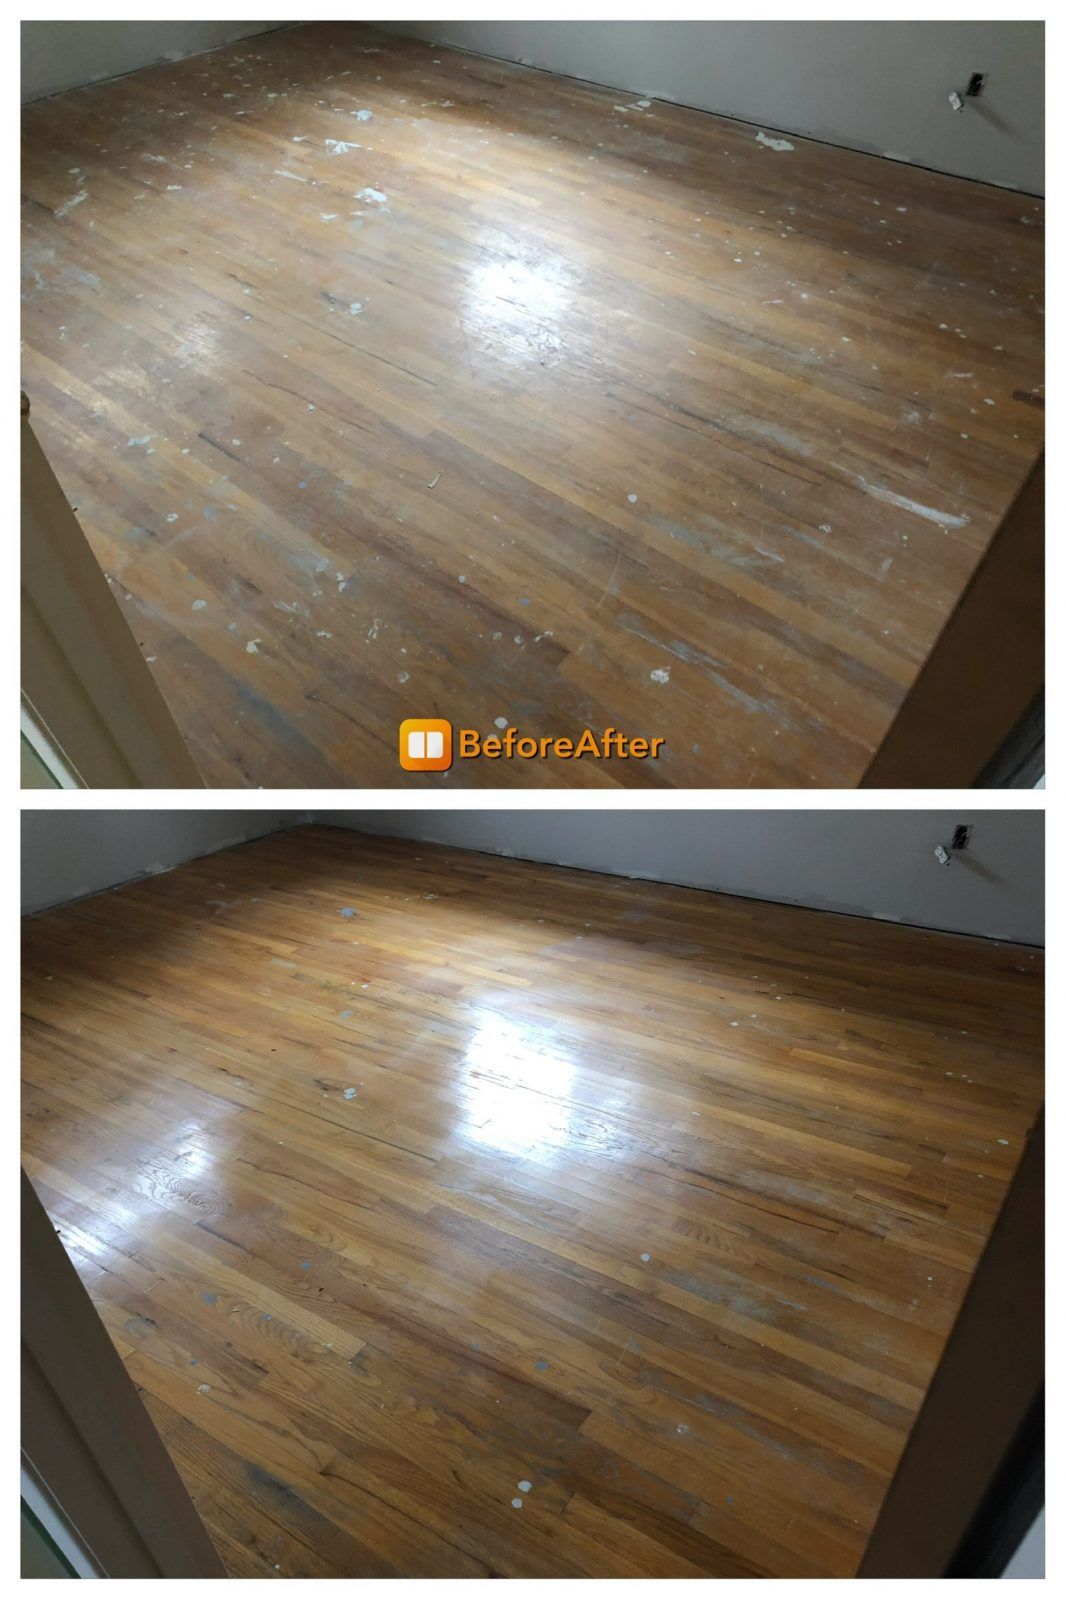 Professional Hardwood Floor Cleaning Amberley Ohio by Howards Cleaning Service